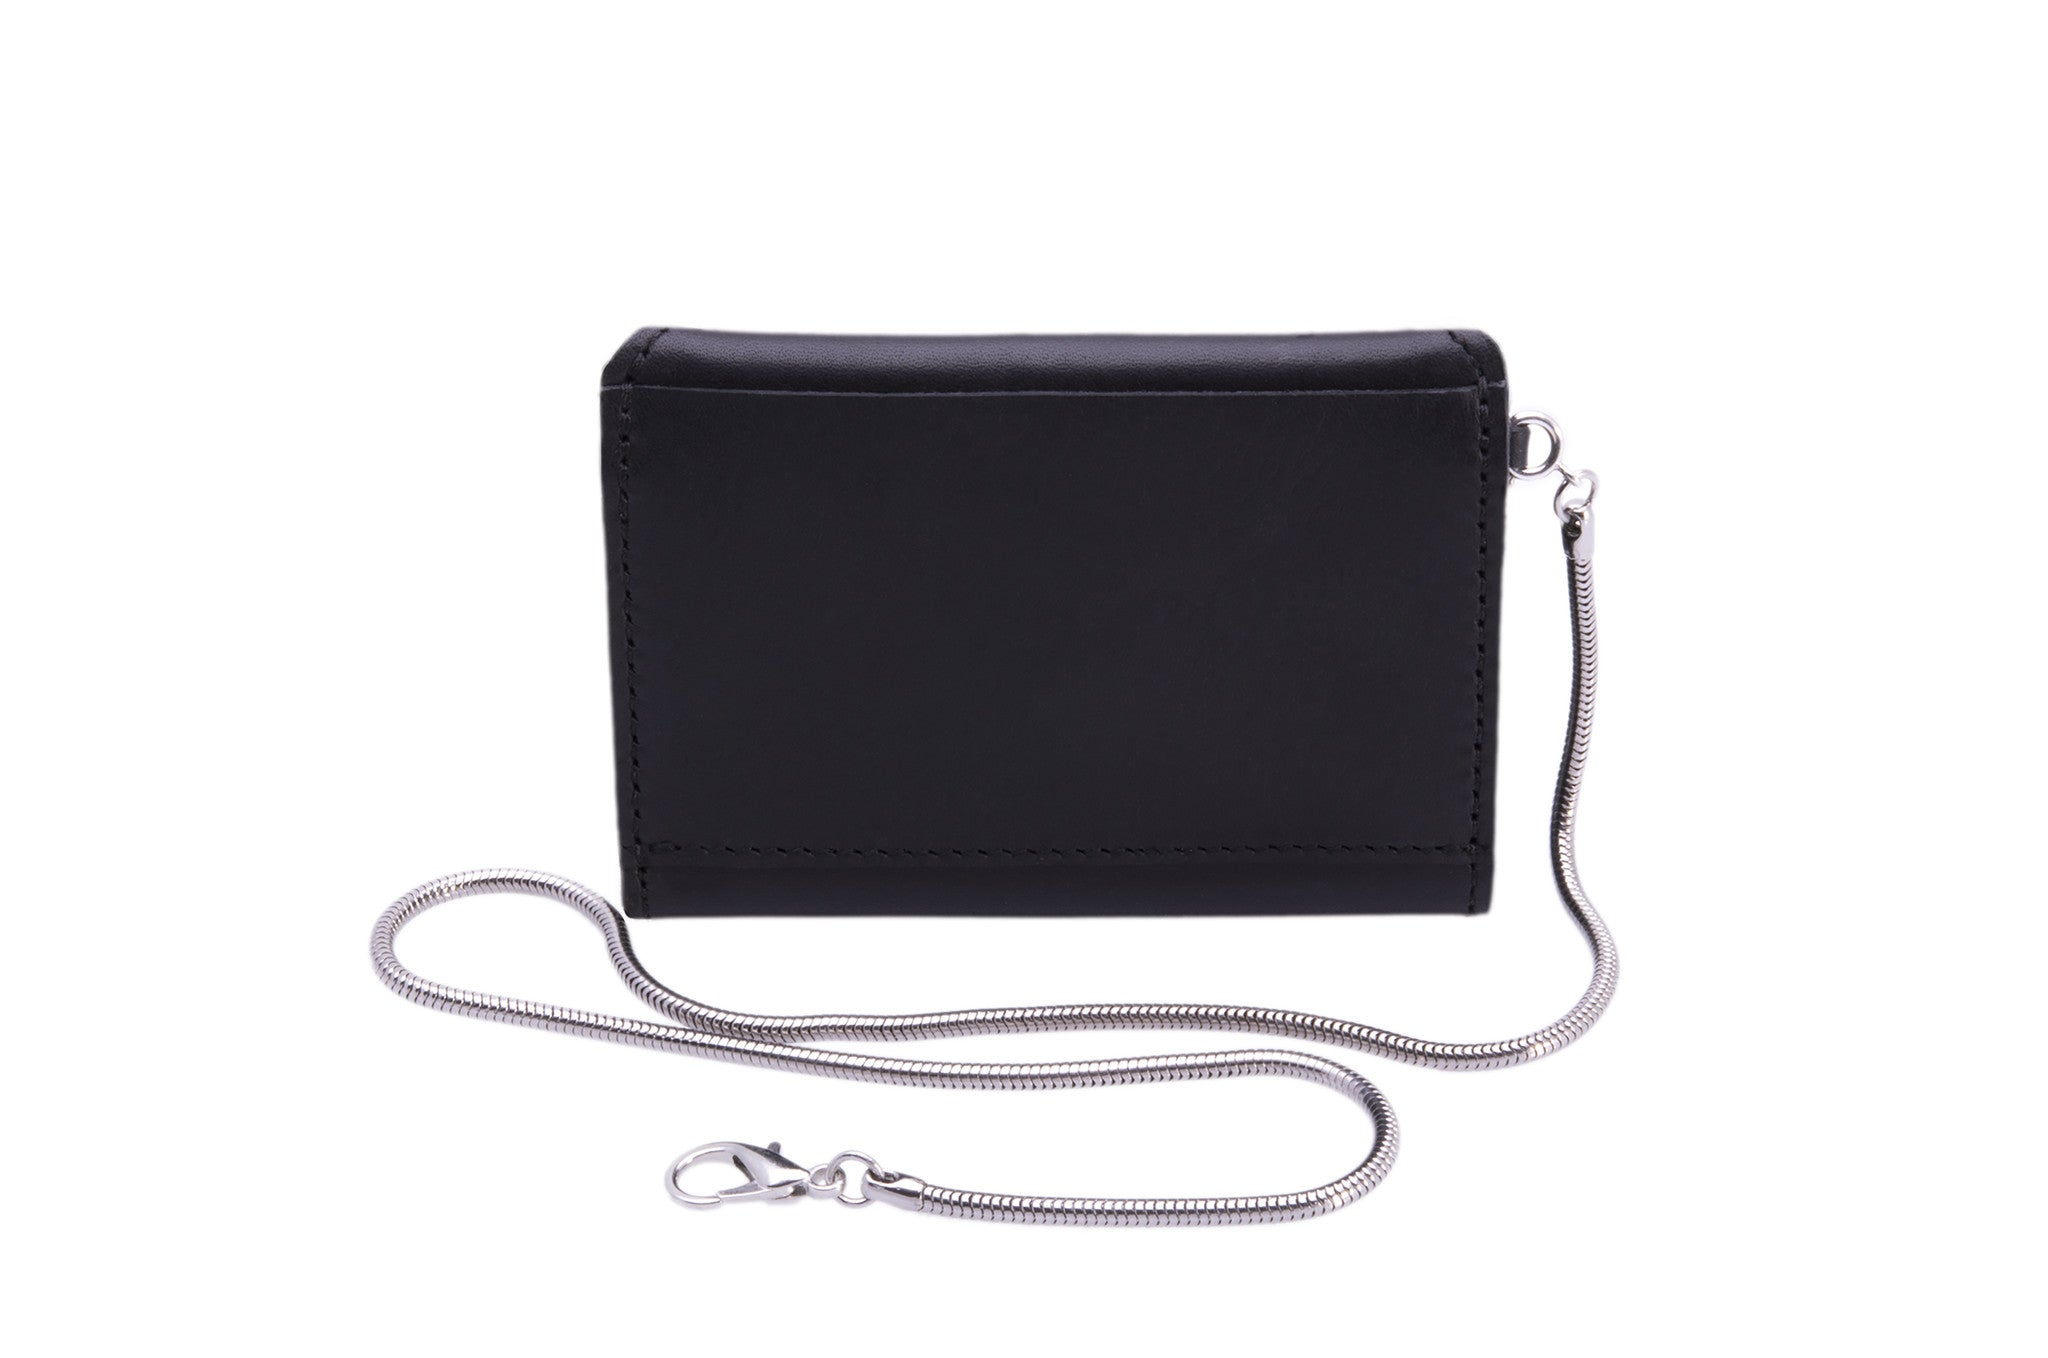 Small Leather Envelope Card Wallet on Safety Key Thin Snake Chain Wendy Nichol Black Leather Handmade in NYC New York City Card Holder Simple Pocket Belt loop High Quality Smooth Black Leather